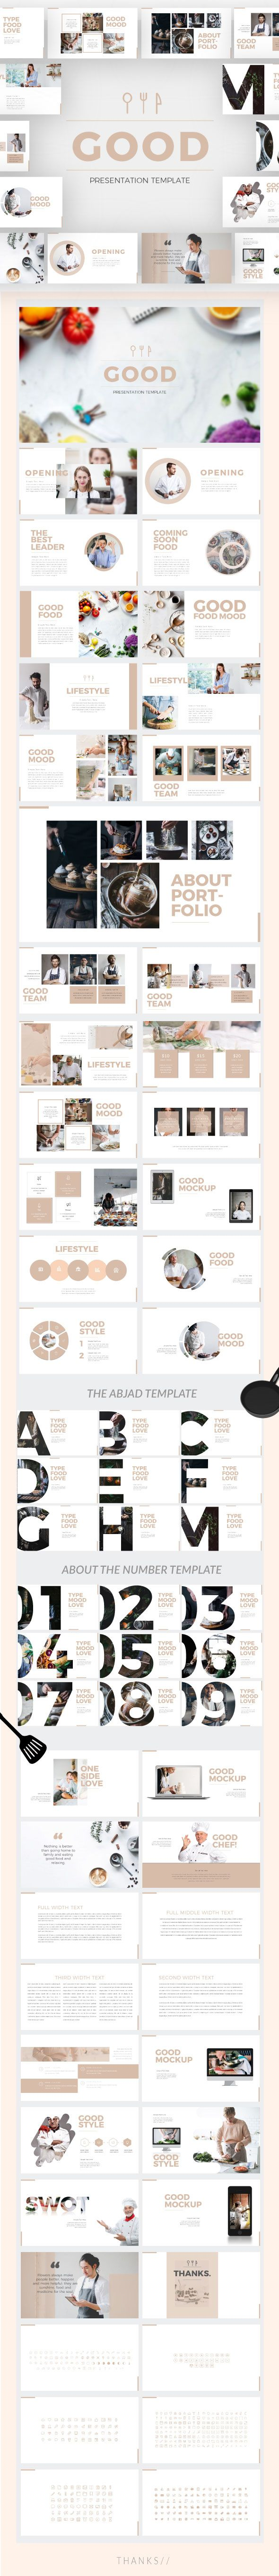 Good  Multipurpose Presentation Templates — PPT #stats #multipurpose • Available here ➝ https://graphicriver.net/item/good-multipurpose-presentation-templates/21077360?ref=pxcr